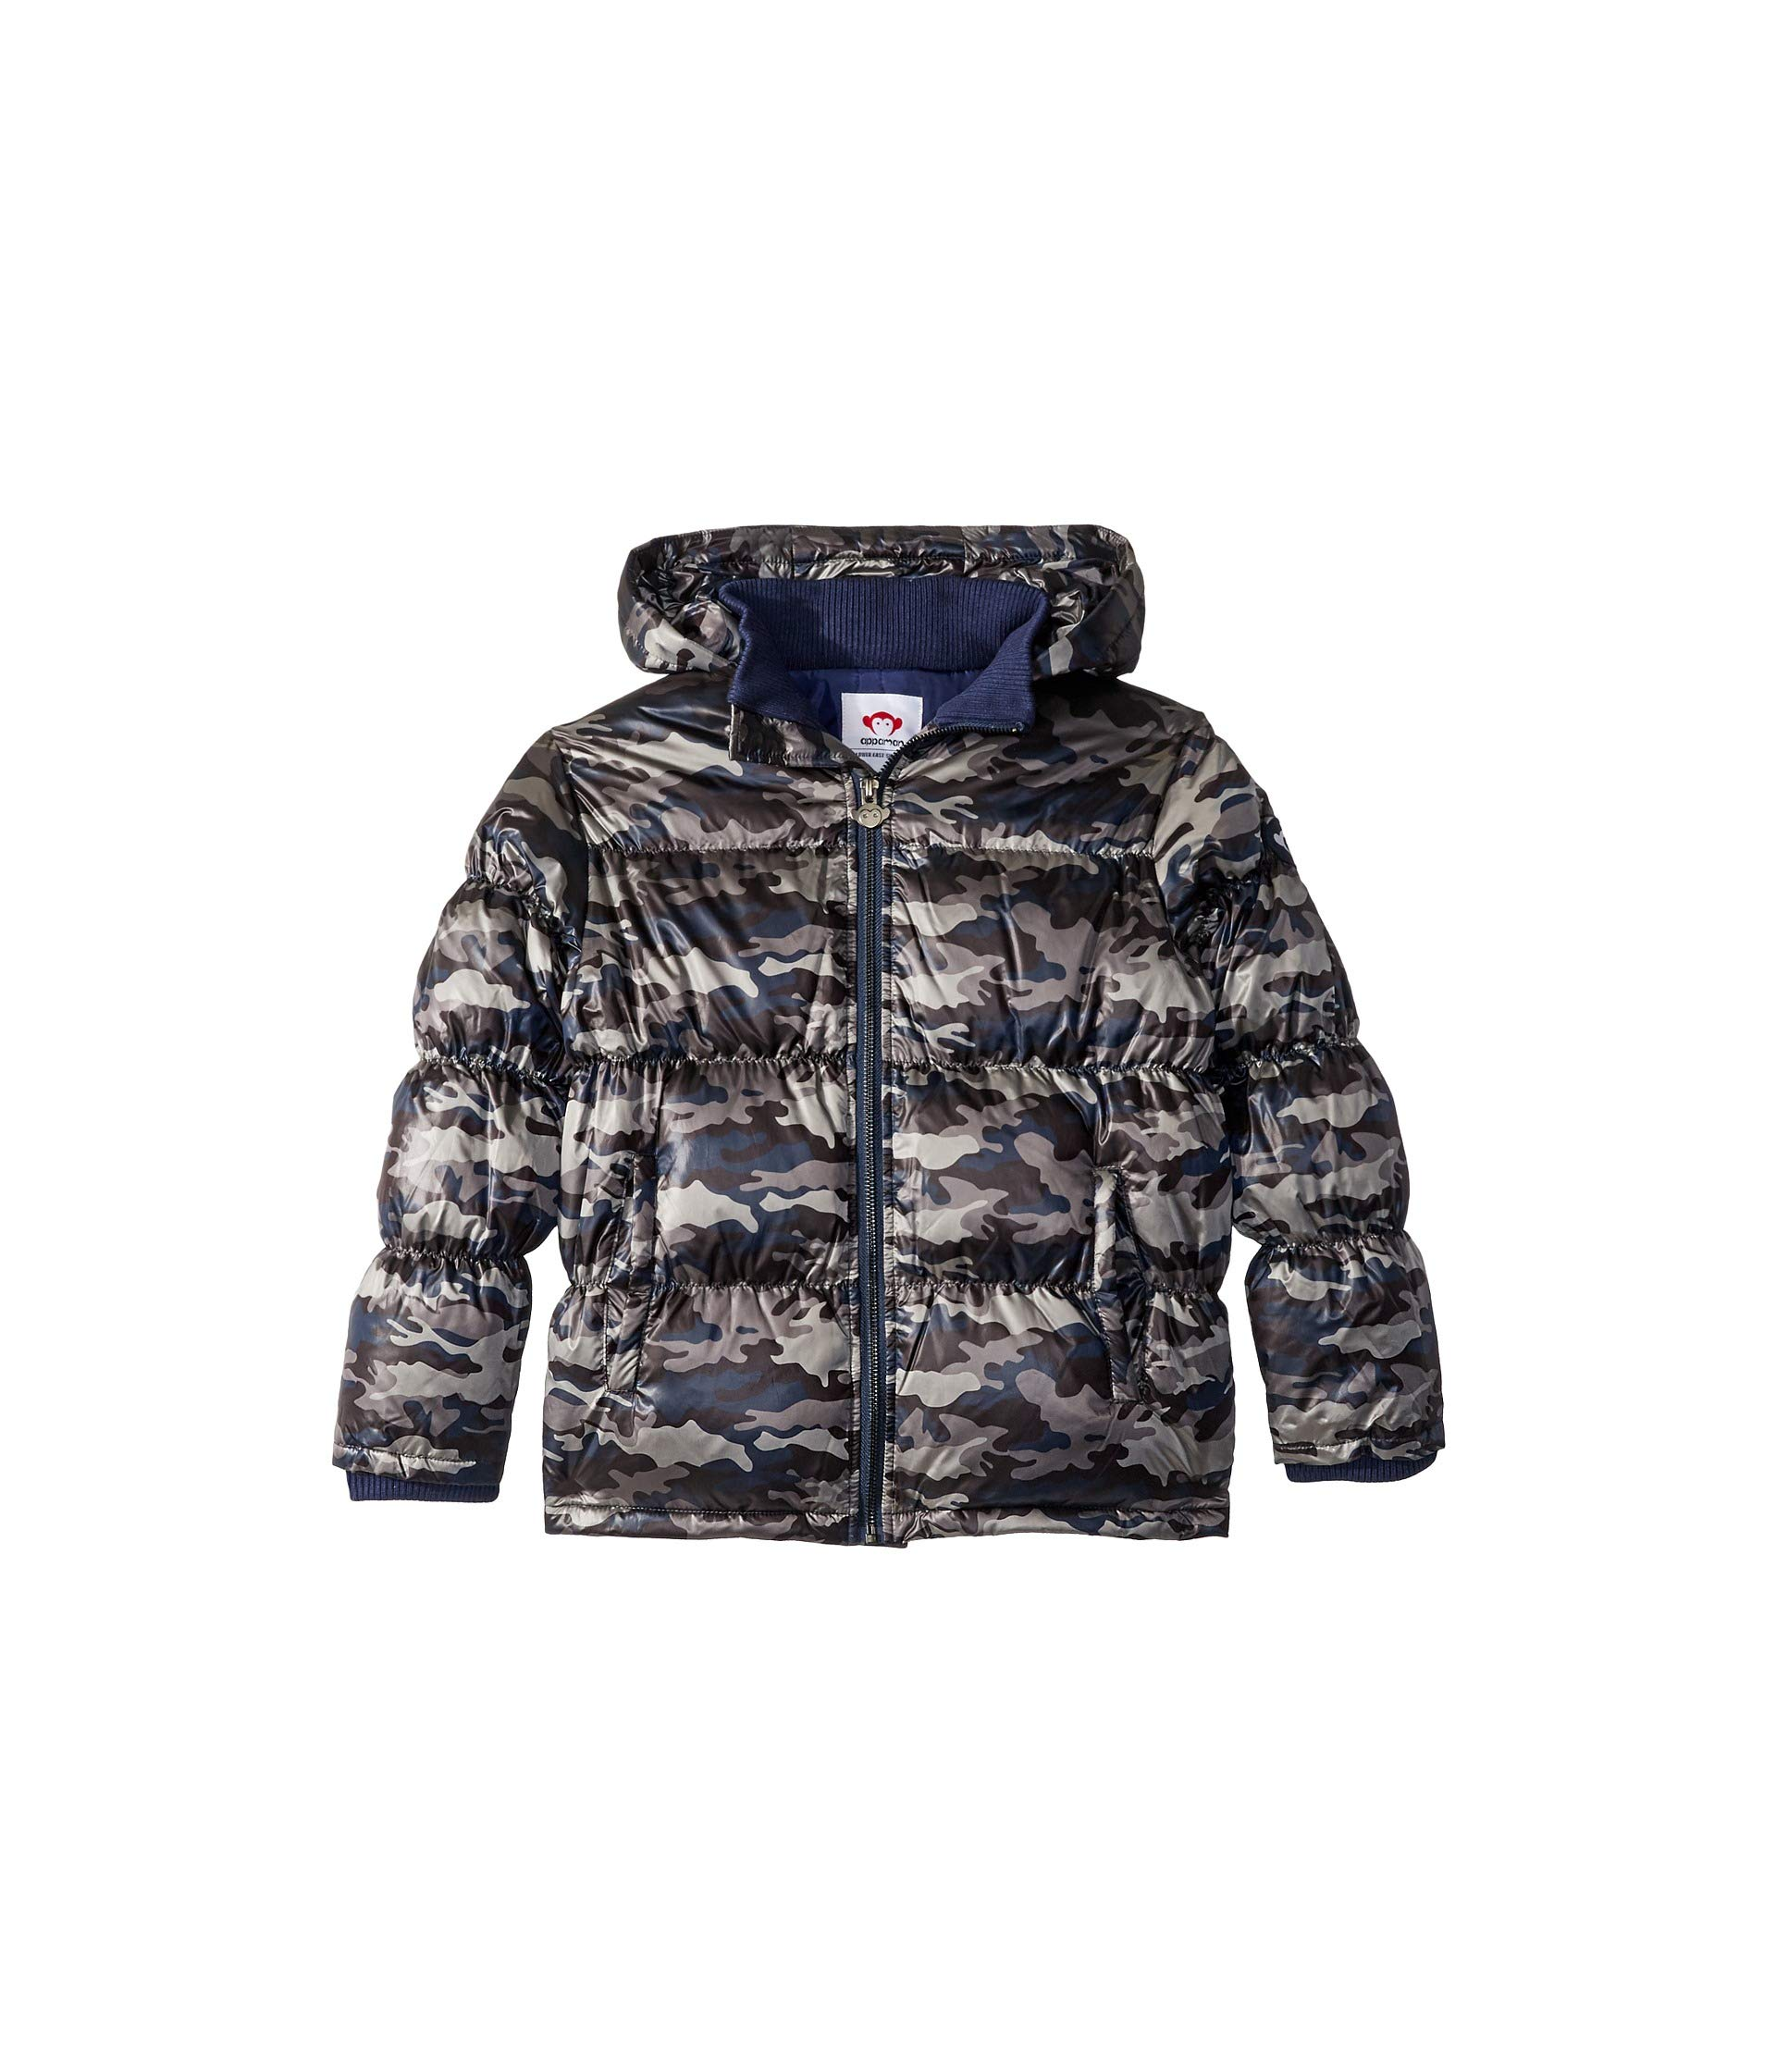 Appaman Kids Baby Boy's Soft Base Camp Puffer Jacket with Front Pockets (Toddler/Little Kids/Big Kids) City Nights Camo 5